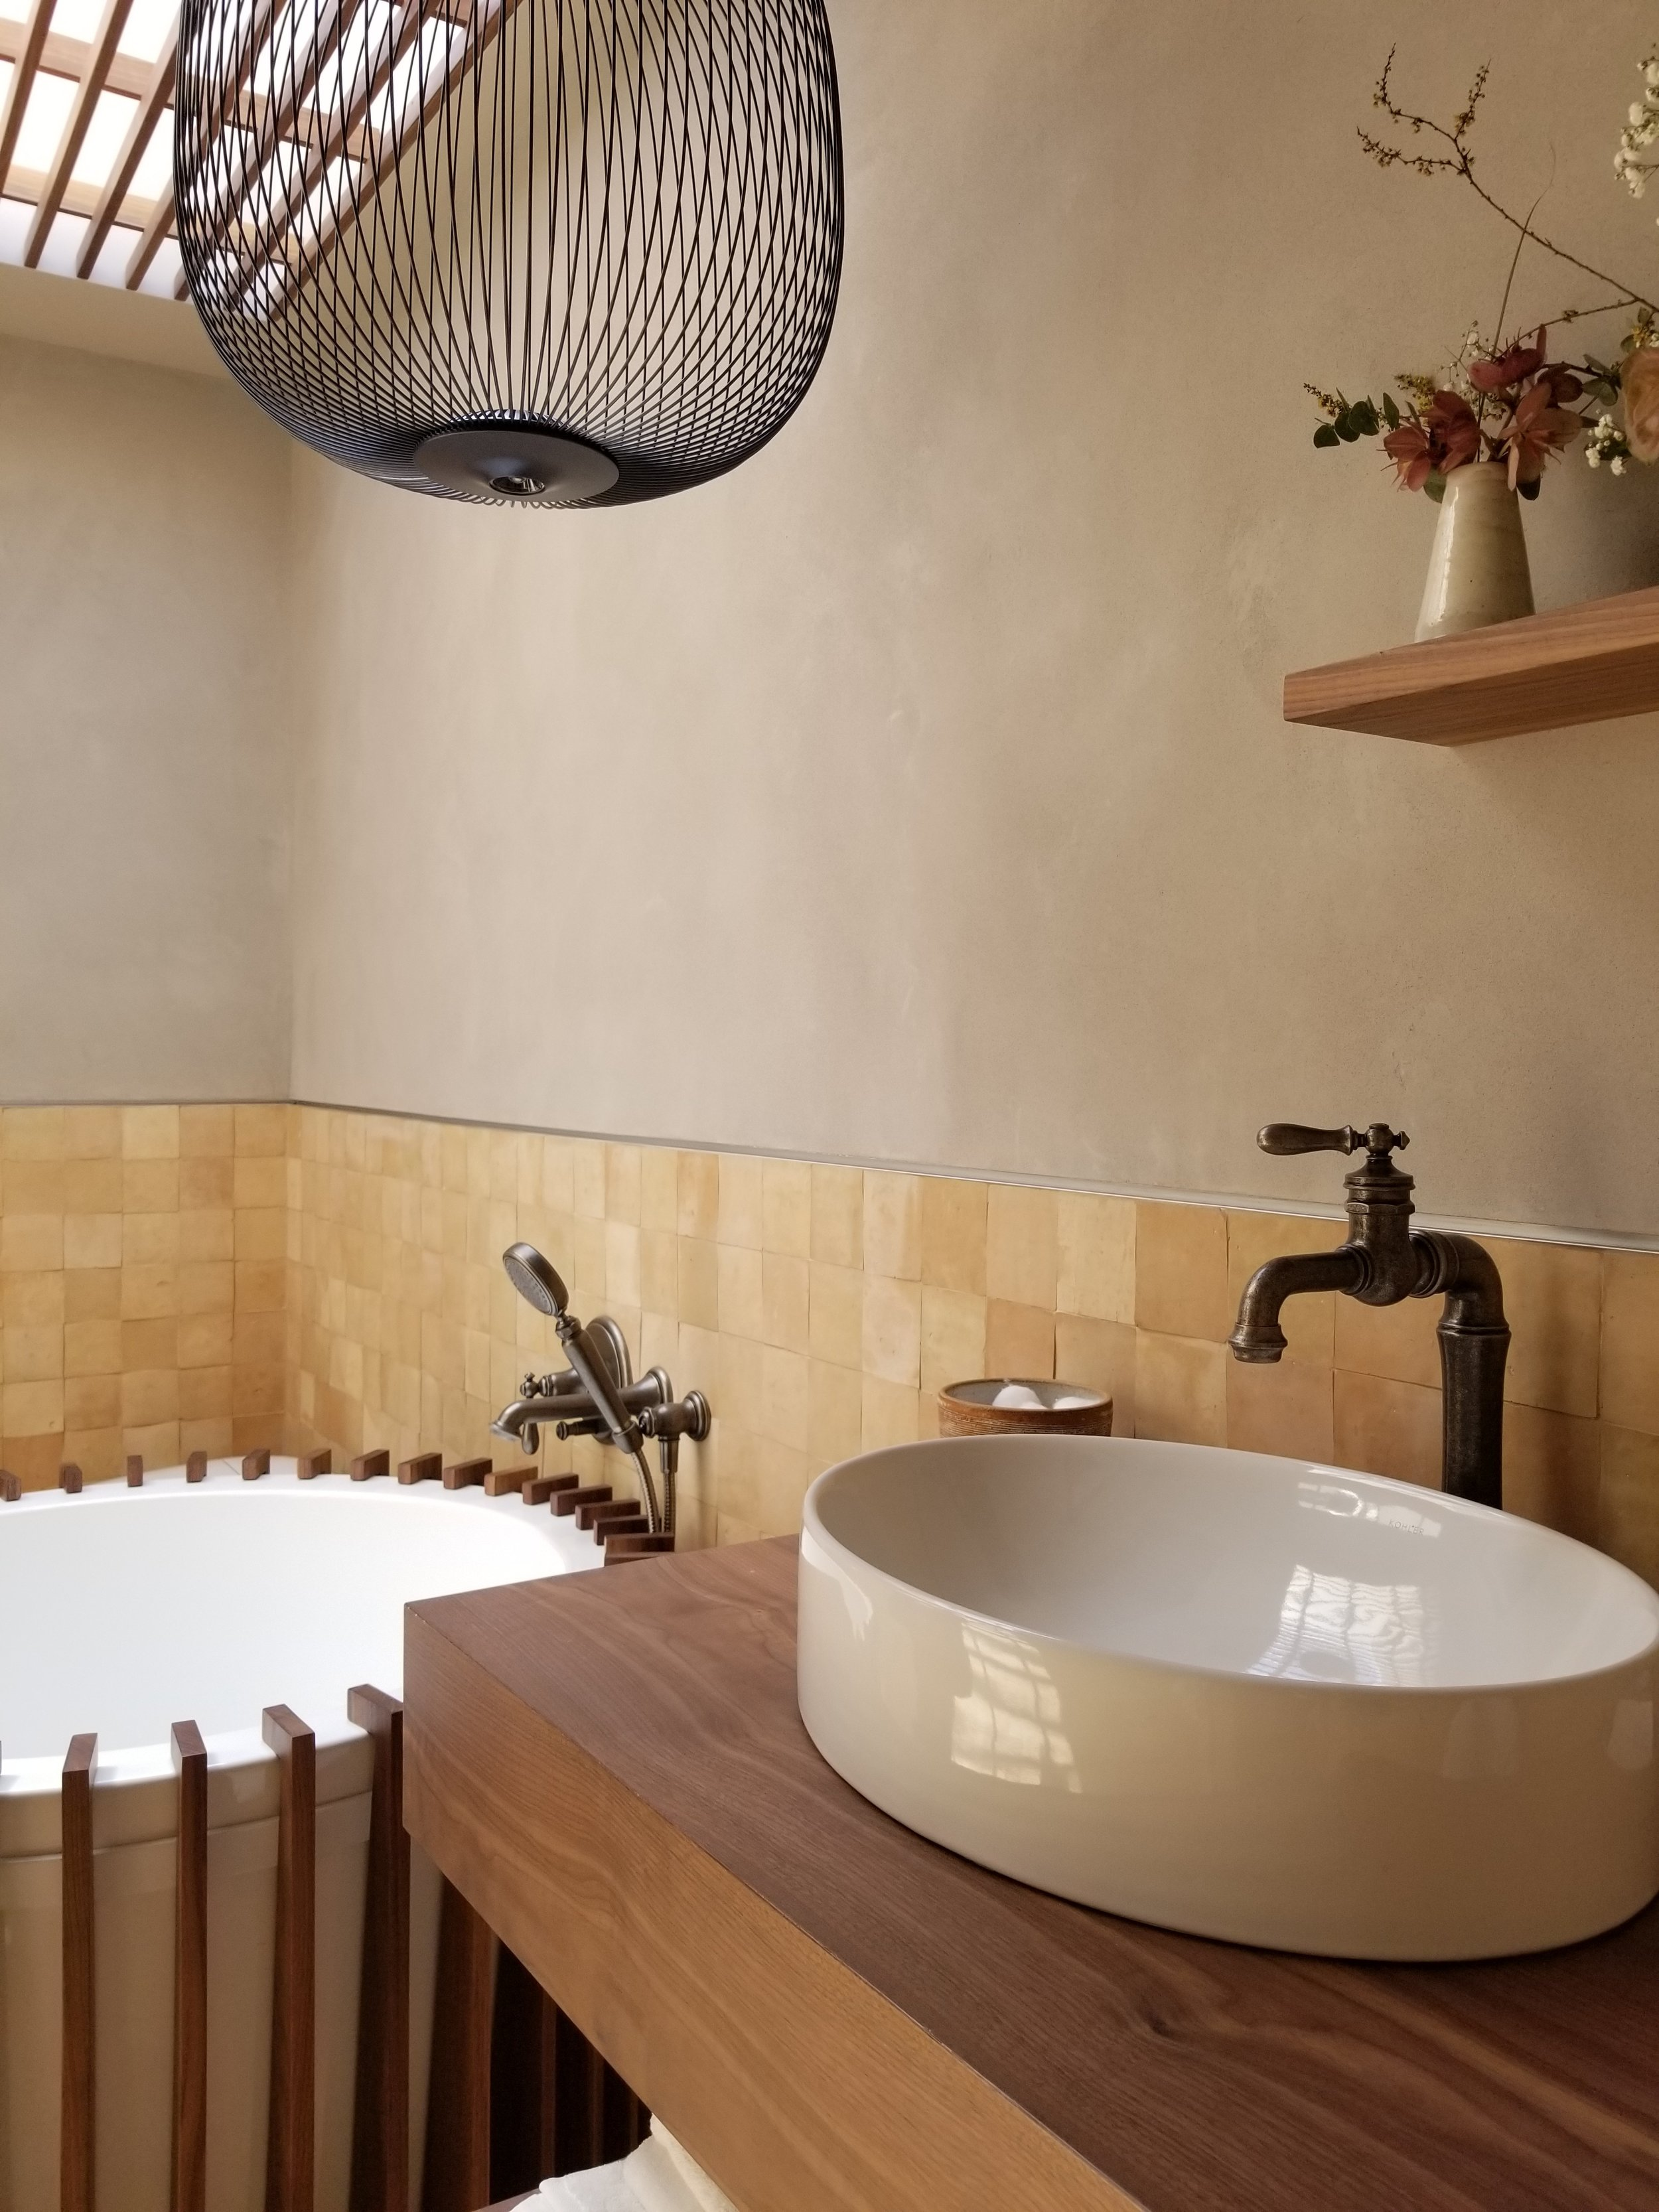 The Wabi Sabi Soak Room, by Clara Bulfoni was a refreshing, earthly private space. The wood made the space warm and cozy